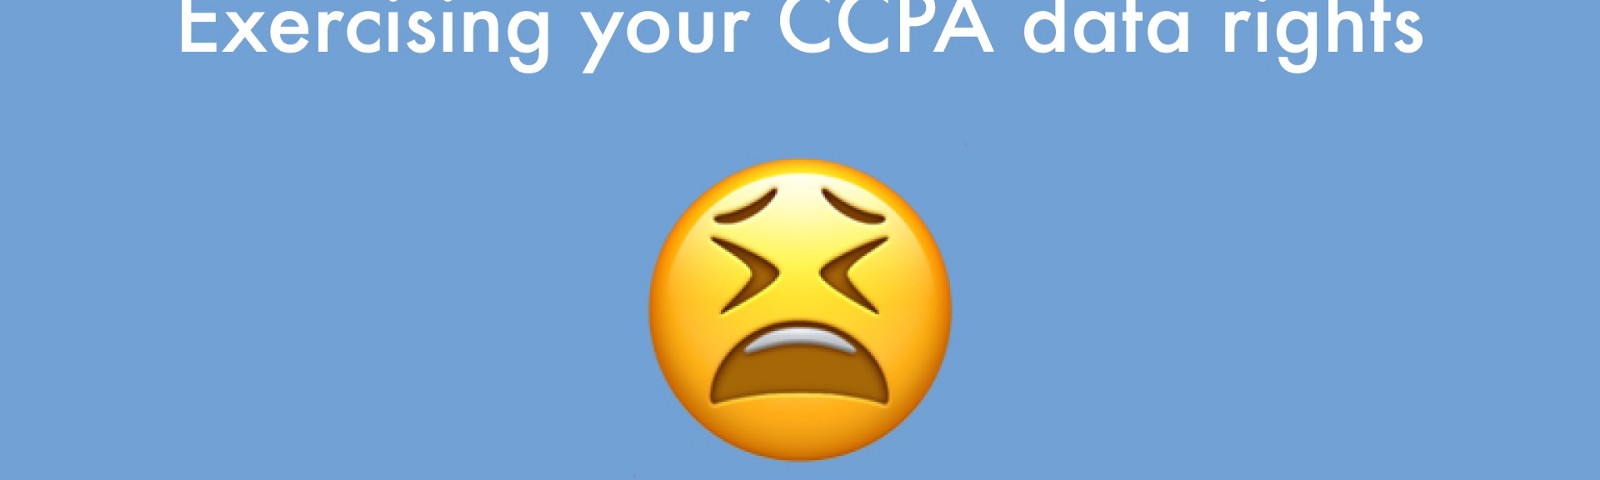 Exercising your CCPA data rights is hard.